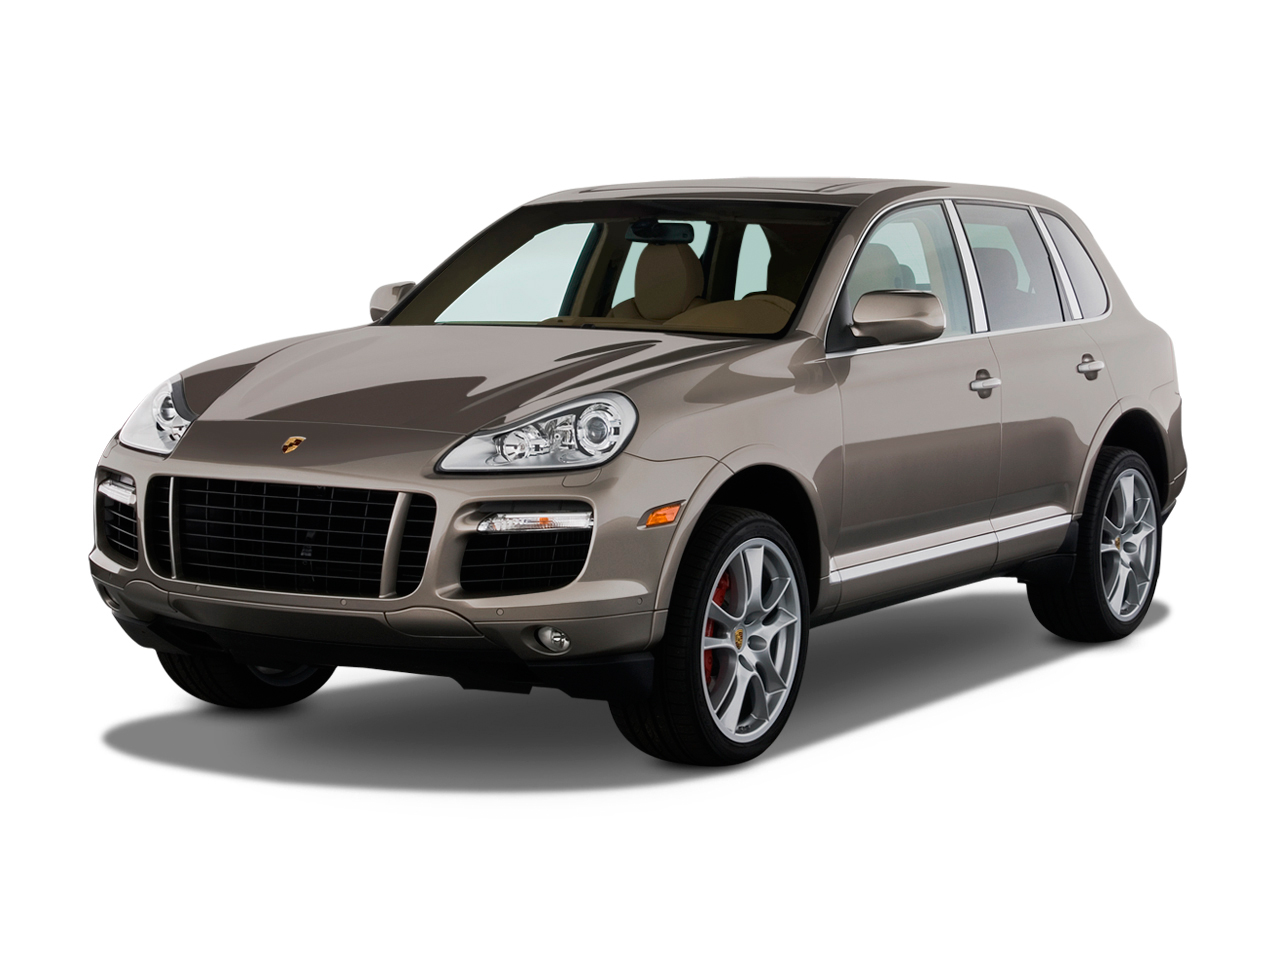 2010 porsche cayenne safety review and crash test ratings. Black Bedroom Furniture Sets. Home Design Ideas